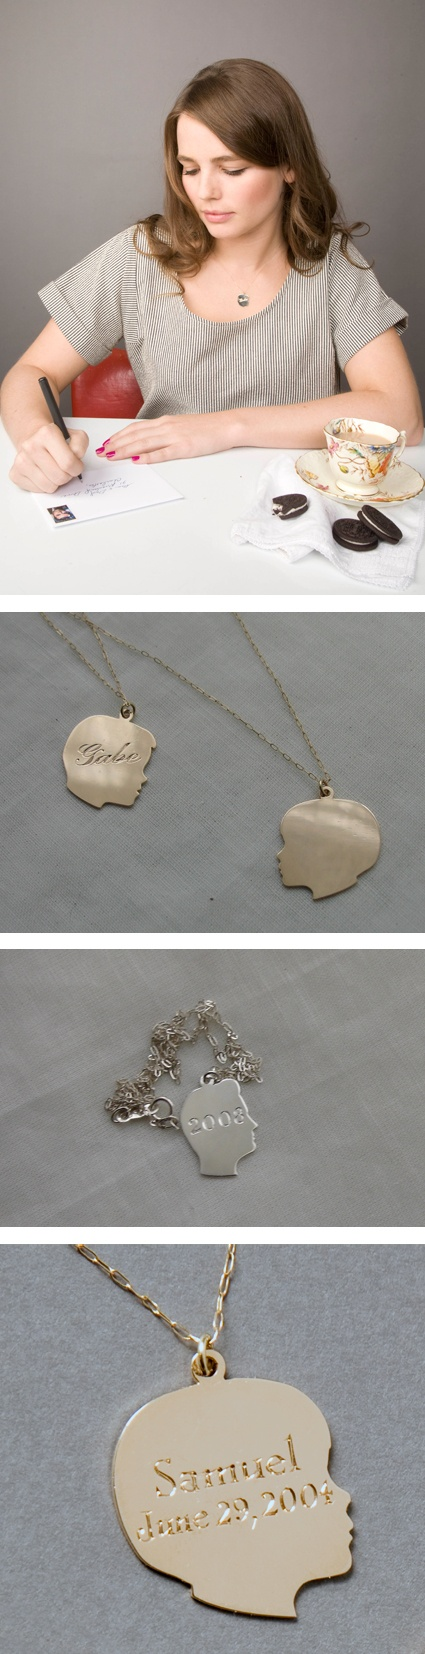 Cool mother's day gift: CUSTOM SILHOUETTE CHARM http://www.love-and-victory.com/silhouette-charm-01.html